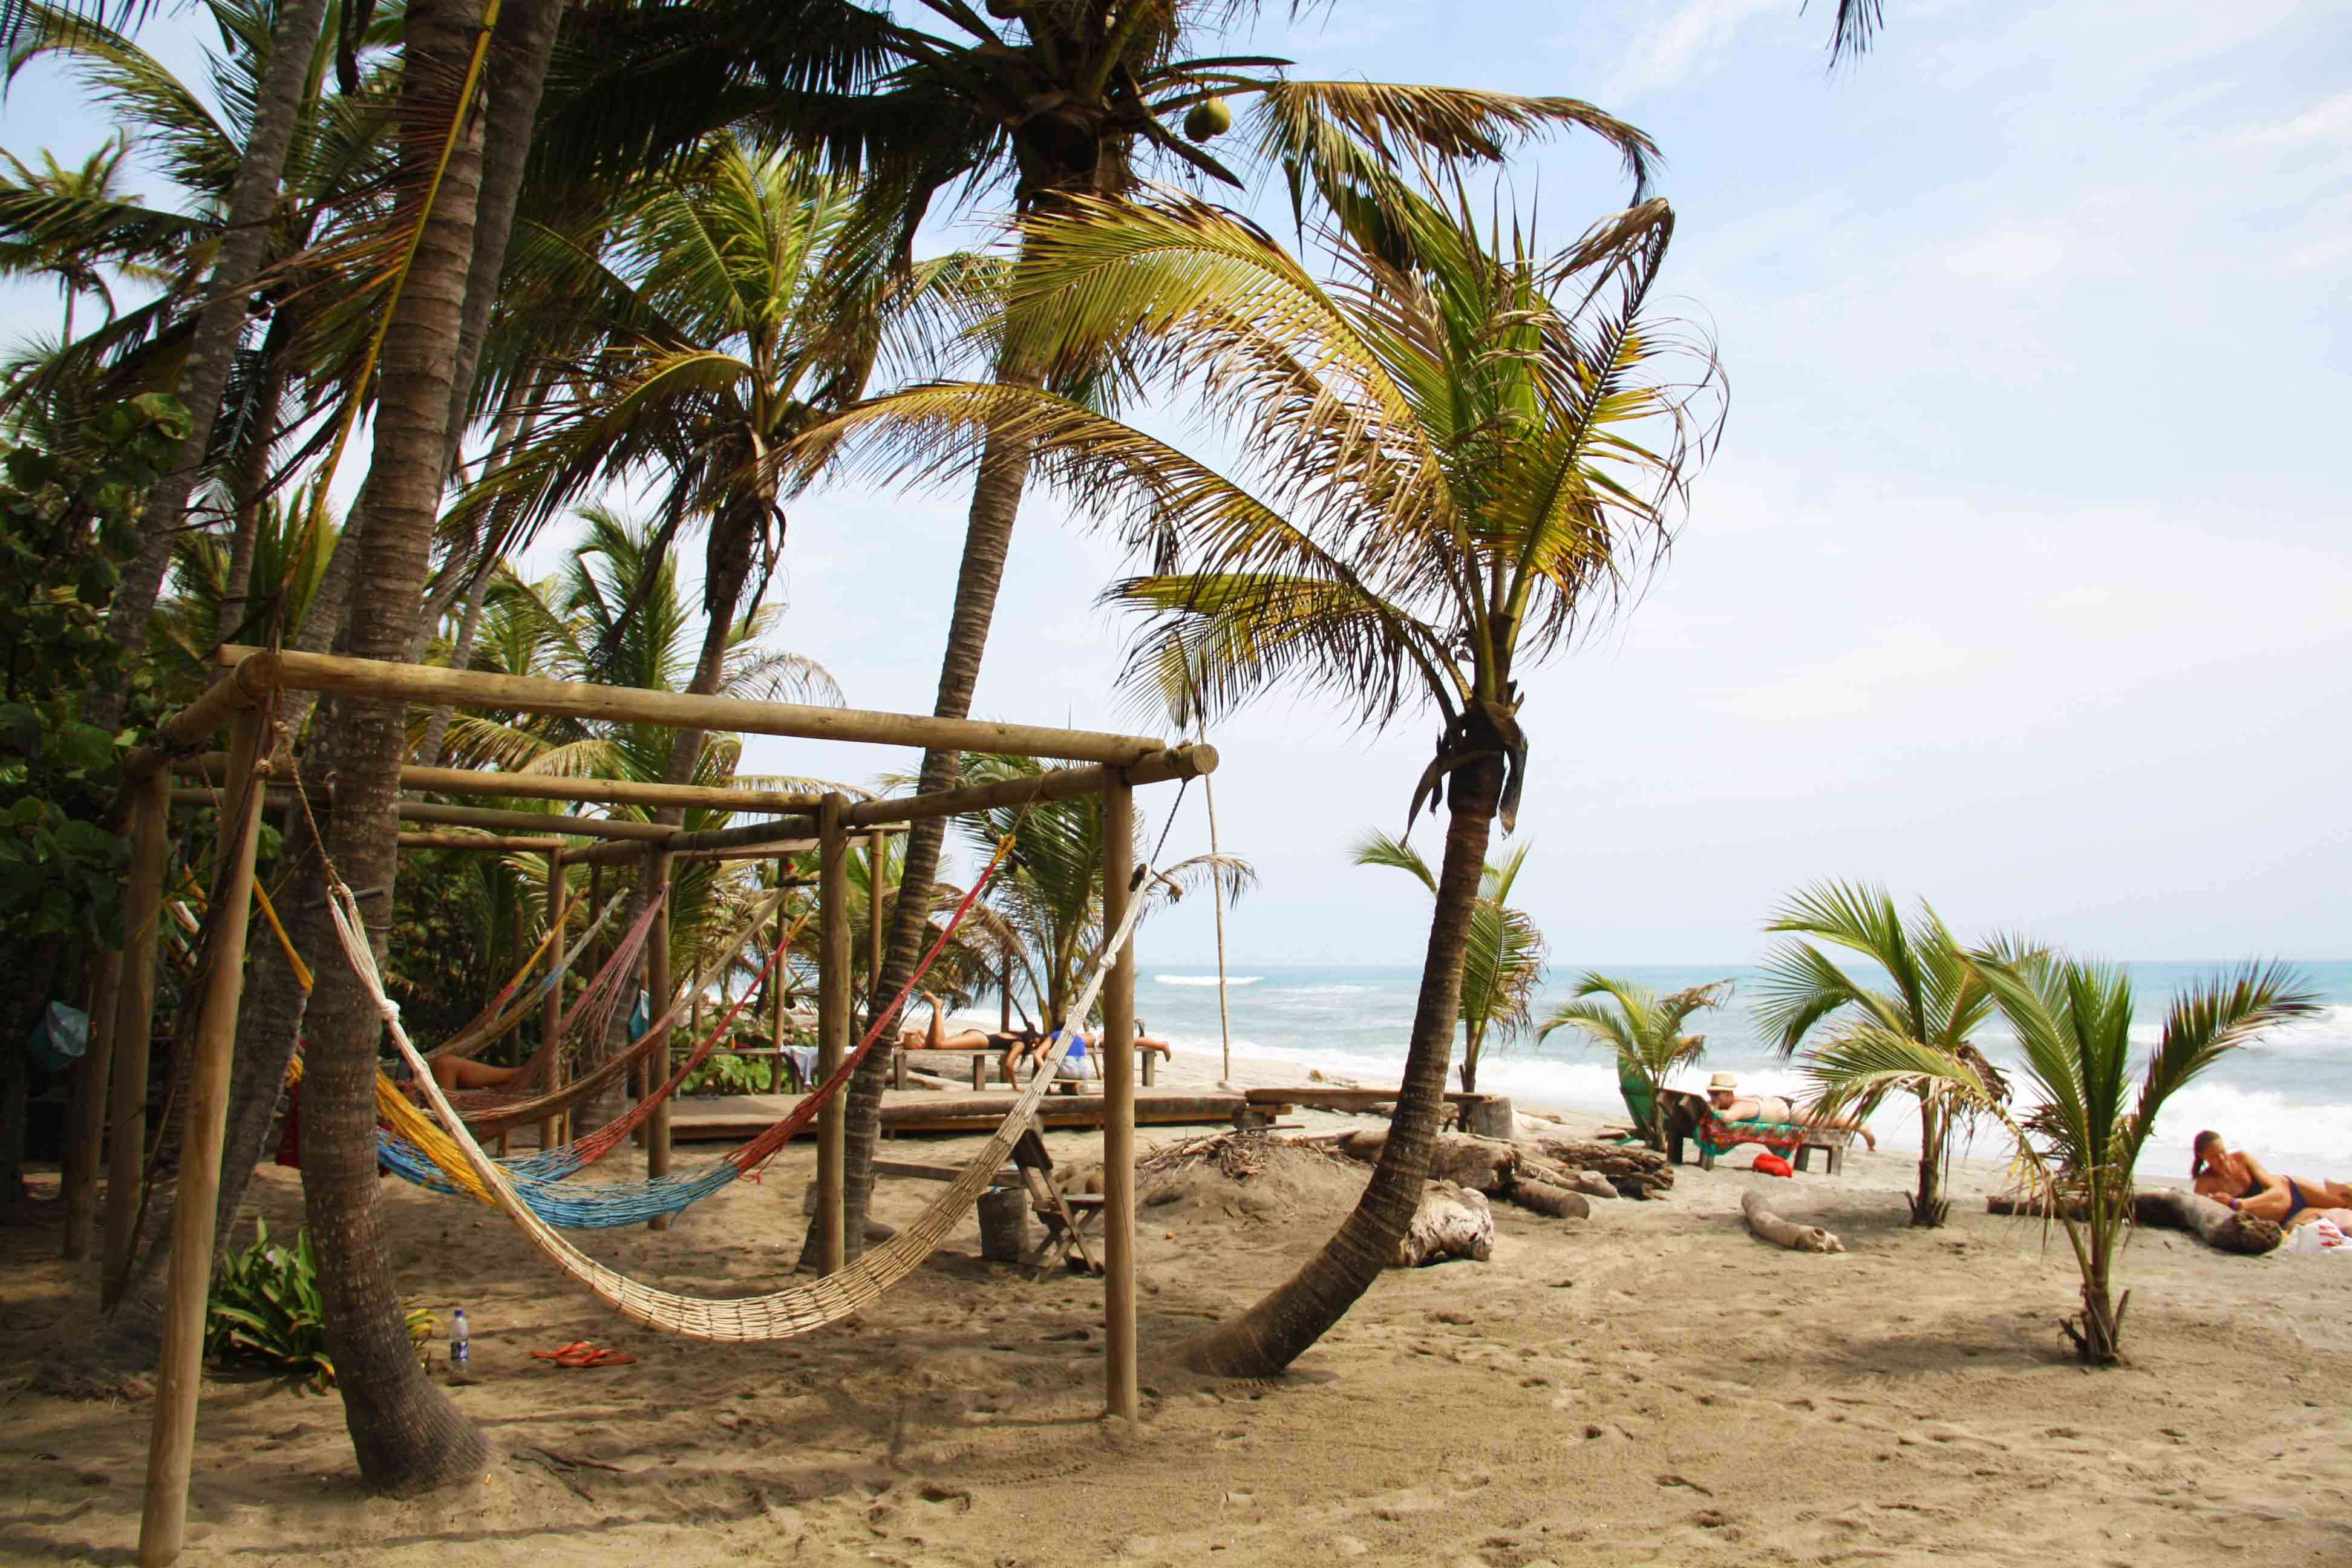 costeno_beach_surfcamp_hammocks_paradise